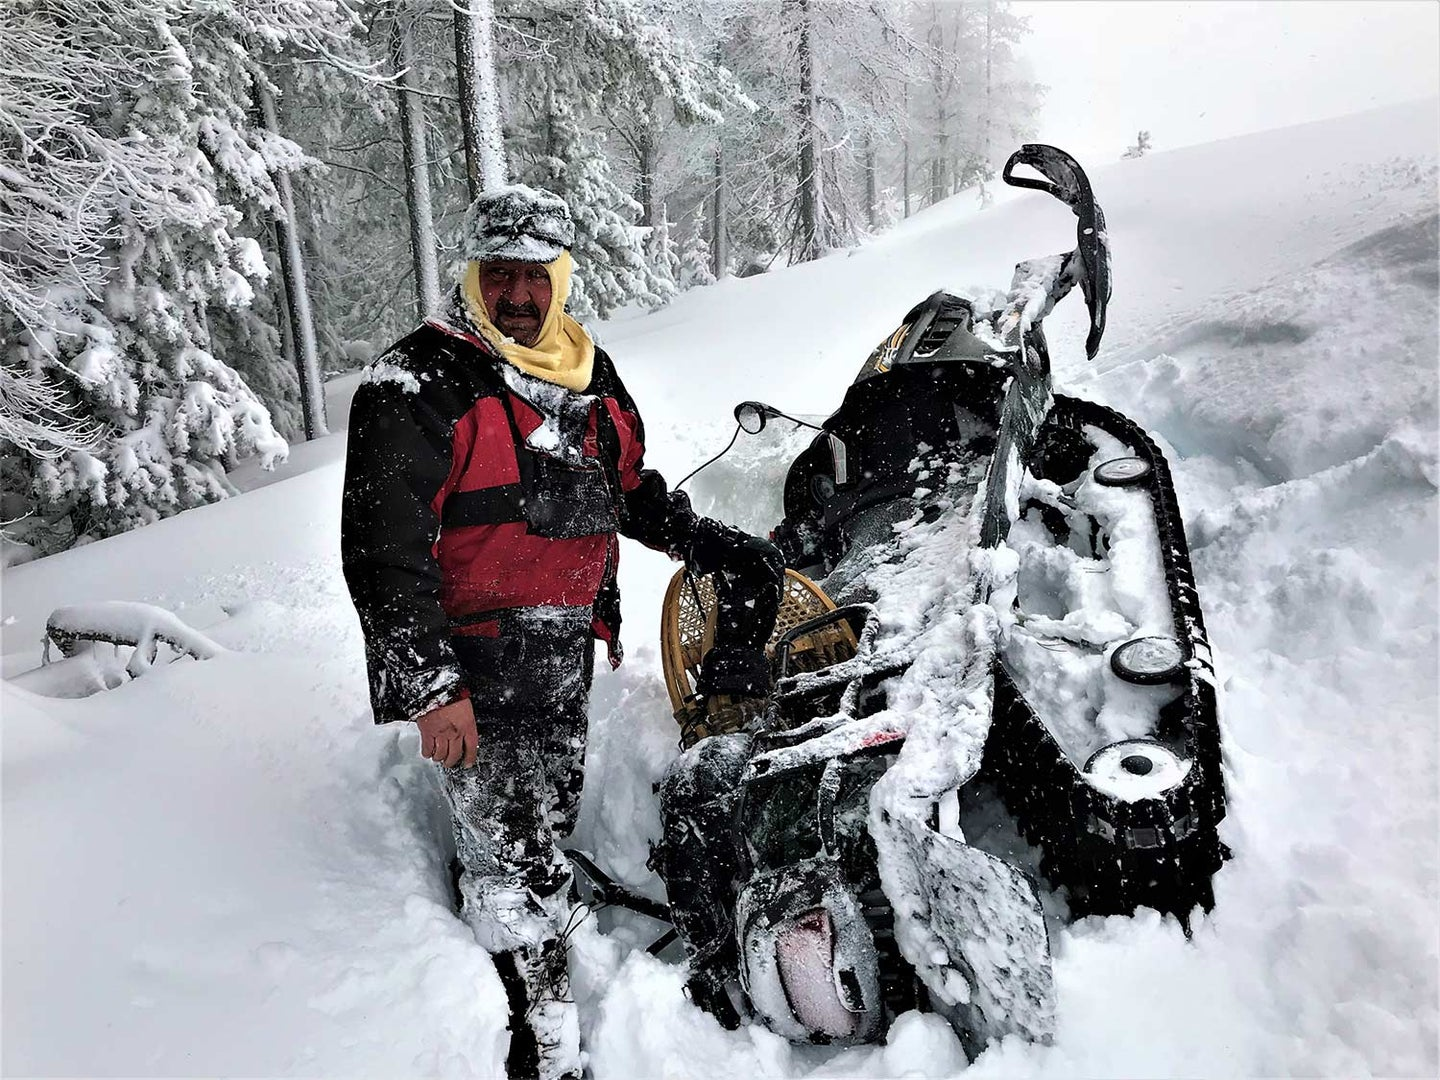 A hunter kneels in the snow next to an overturned snowmobile.